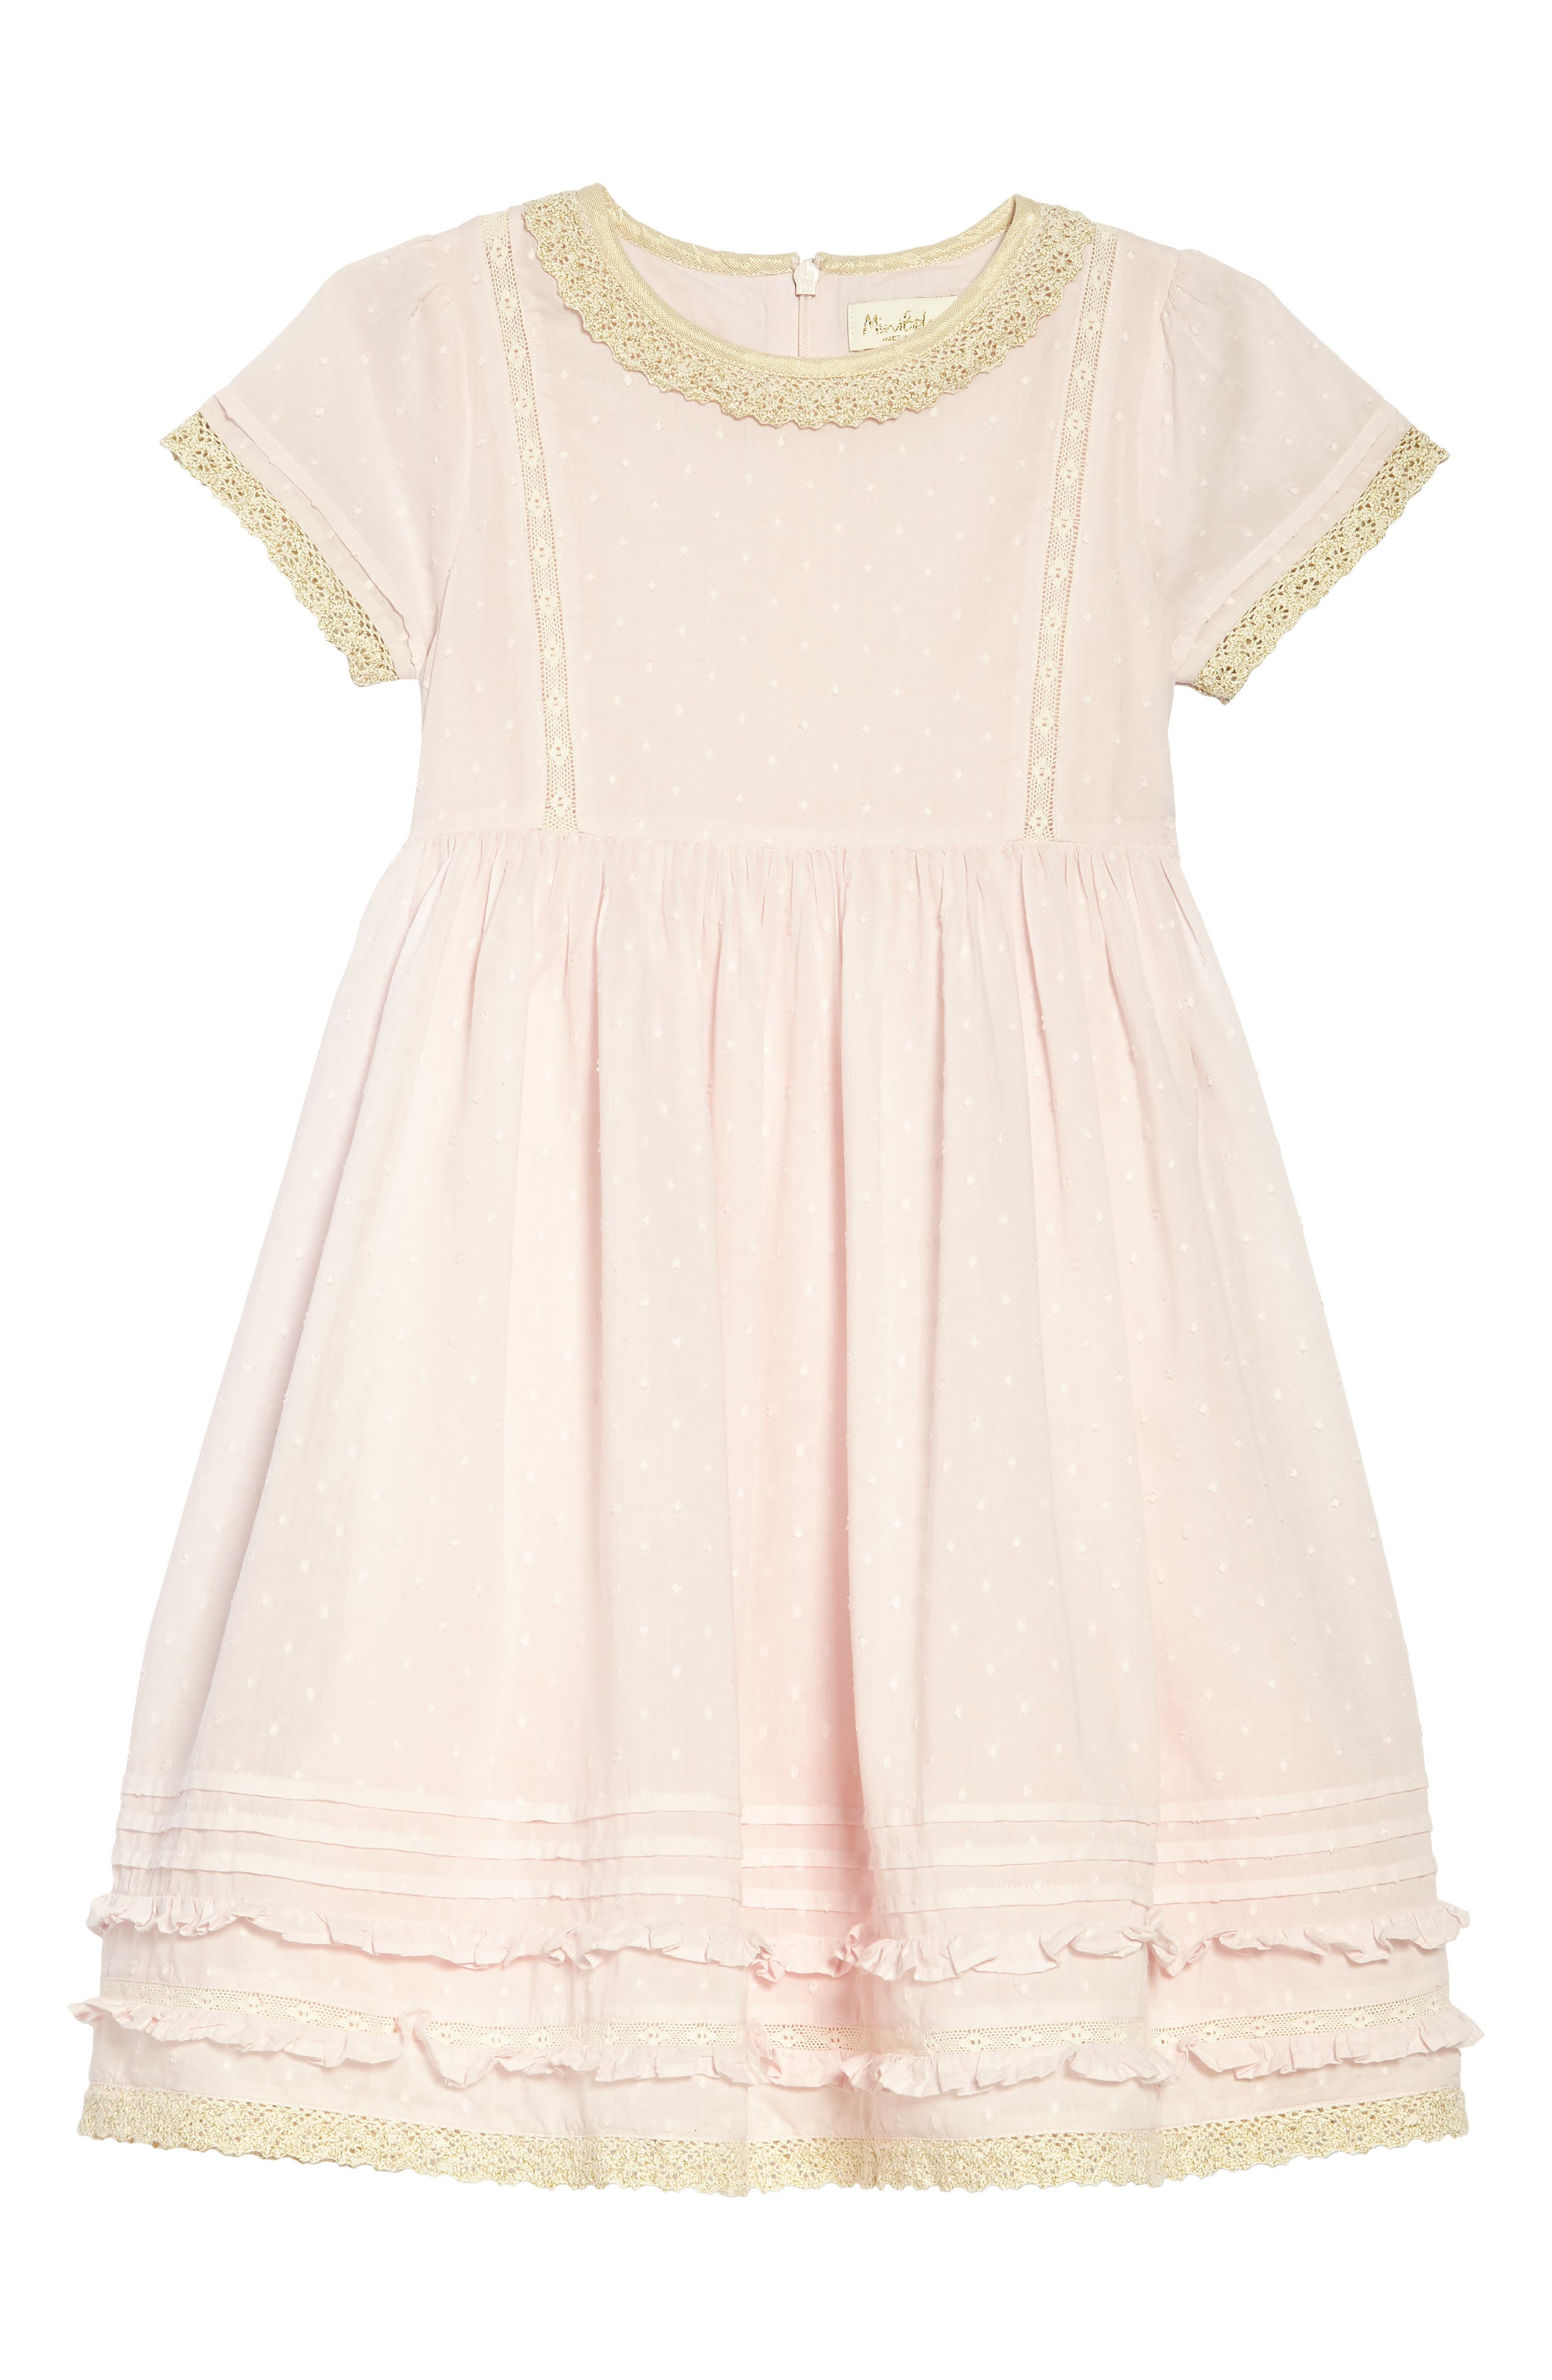 Lace Trim Fit & Flare Dress,                         Main,                         color, Pnkpink Mist